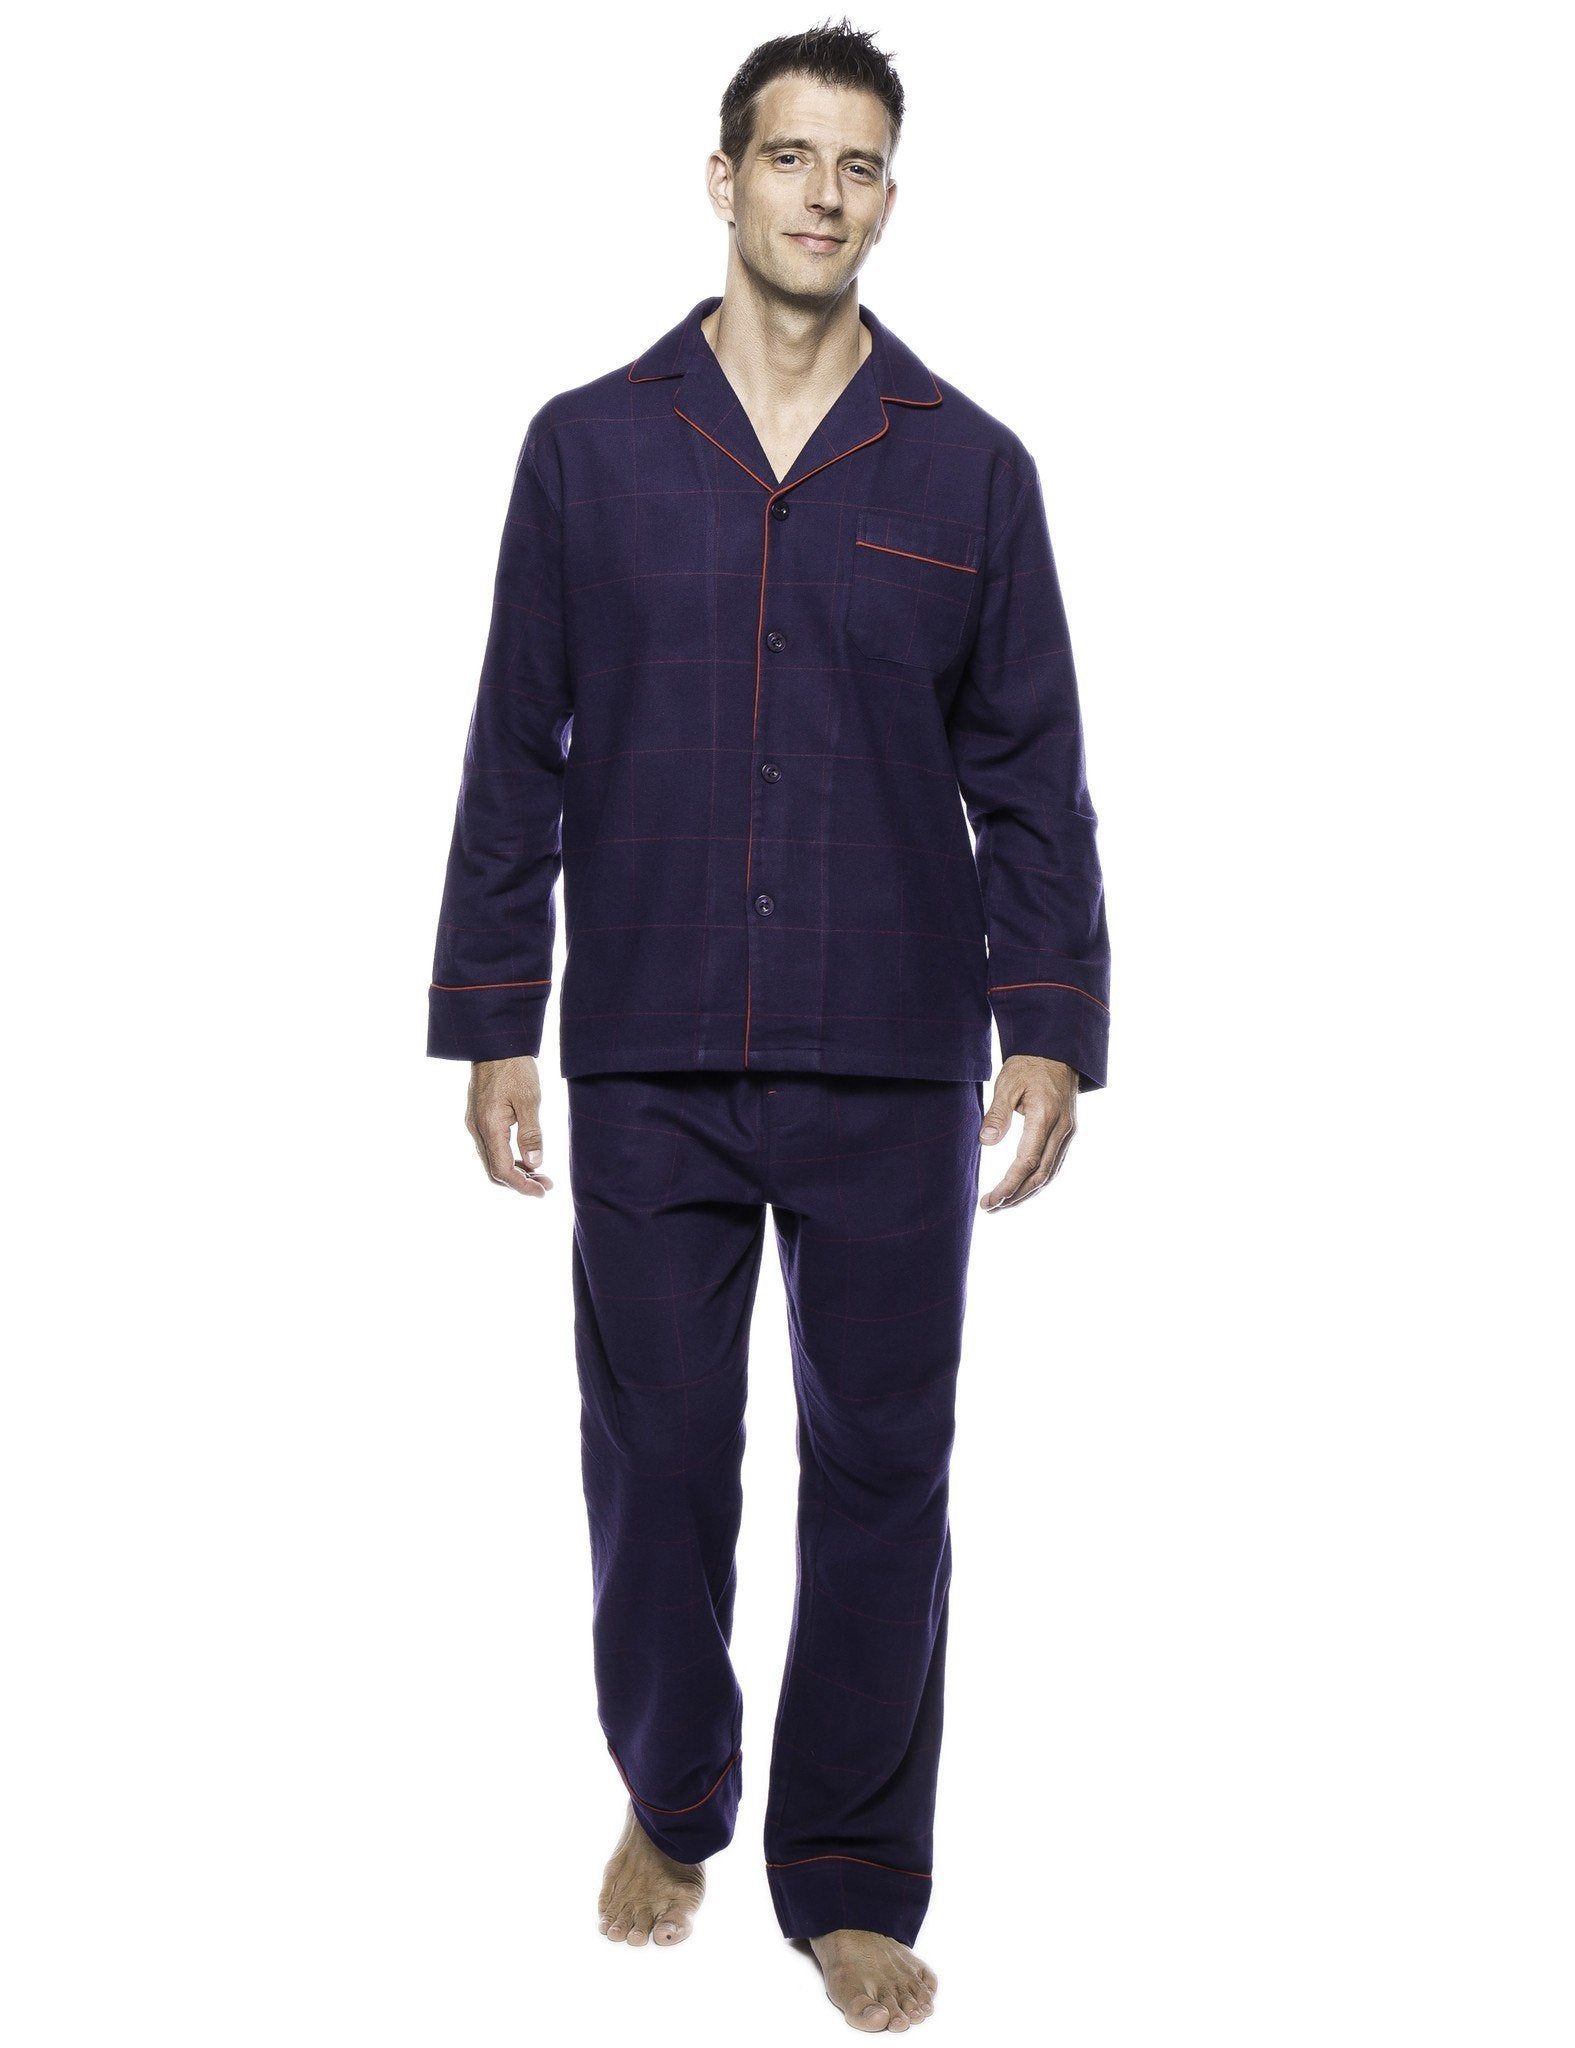 Box Packaged Men's Premium 100% Cotton Flannel Pajama Sleepwear Set - Windowpane Checks Blue/Red